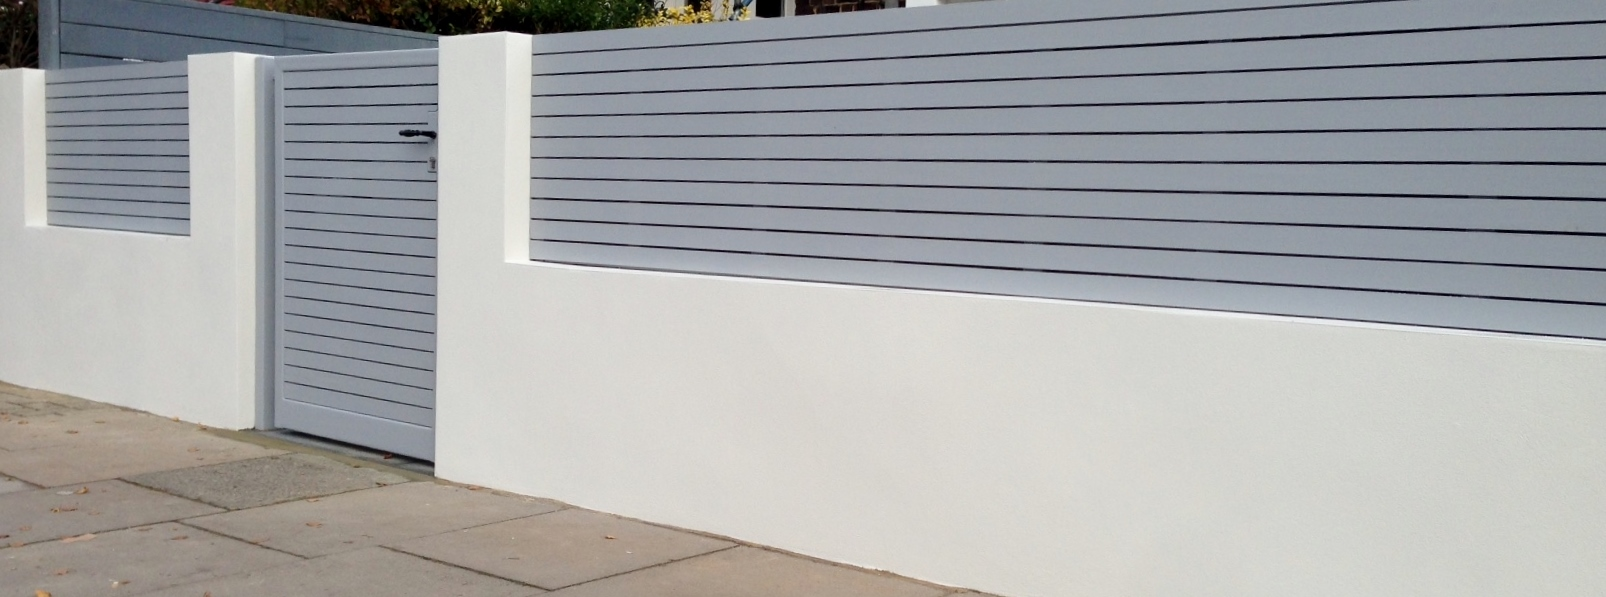 front boundary wall screen automated electronic gate installation grey wooden fence bike store modern garden design balham clapham london (8)